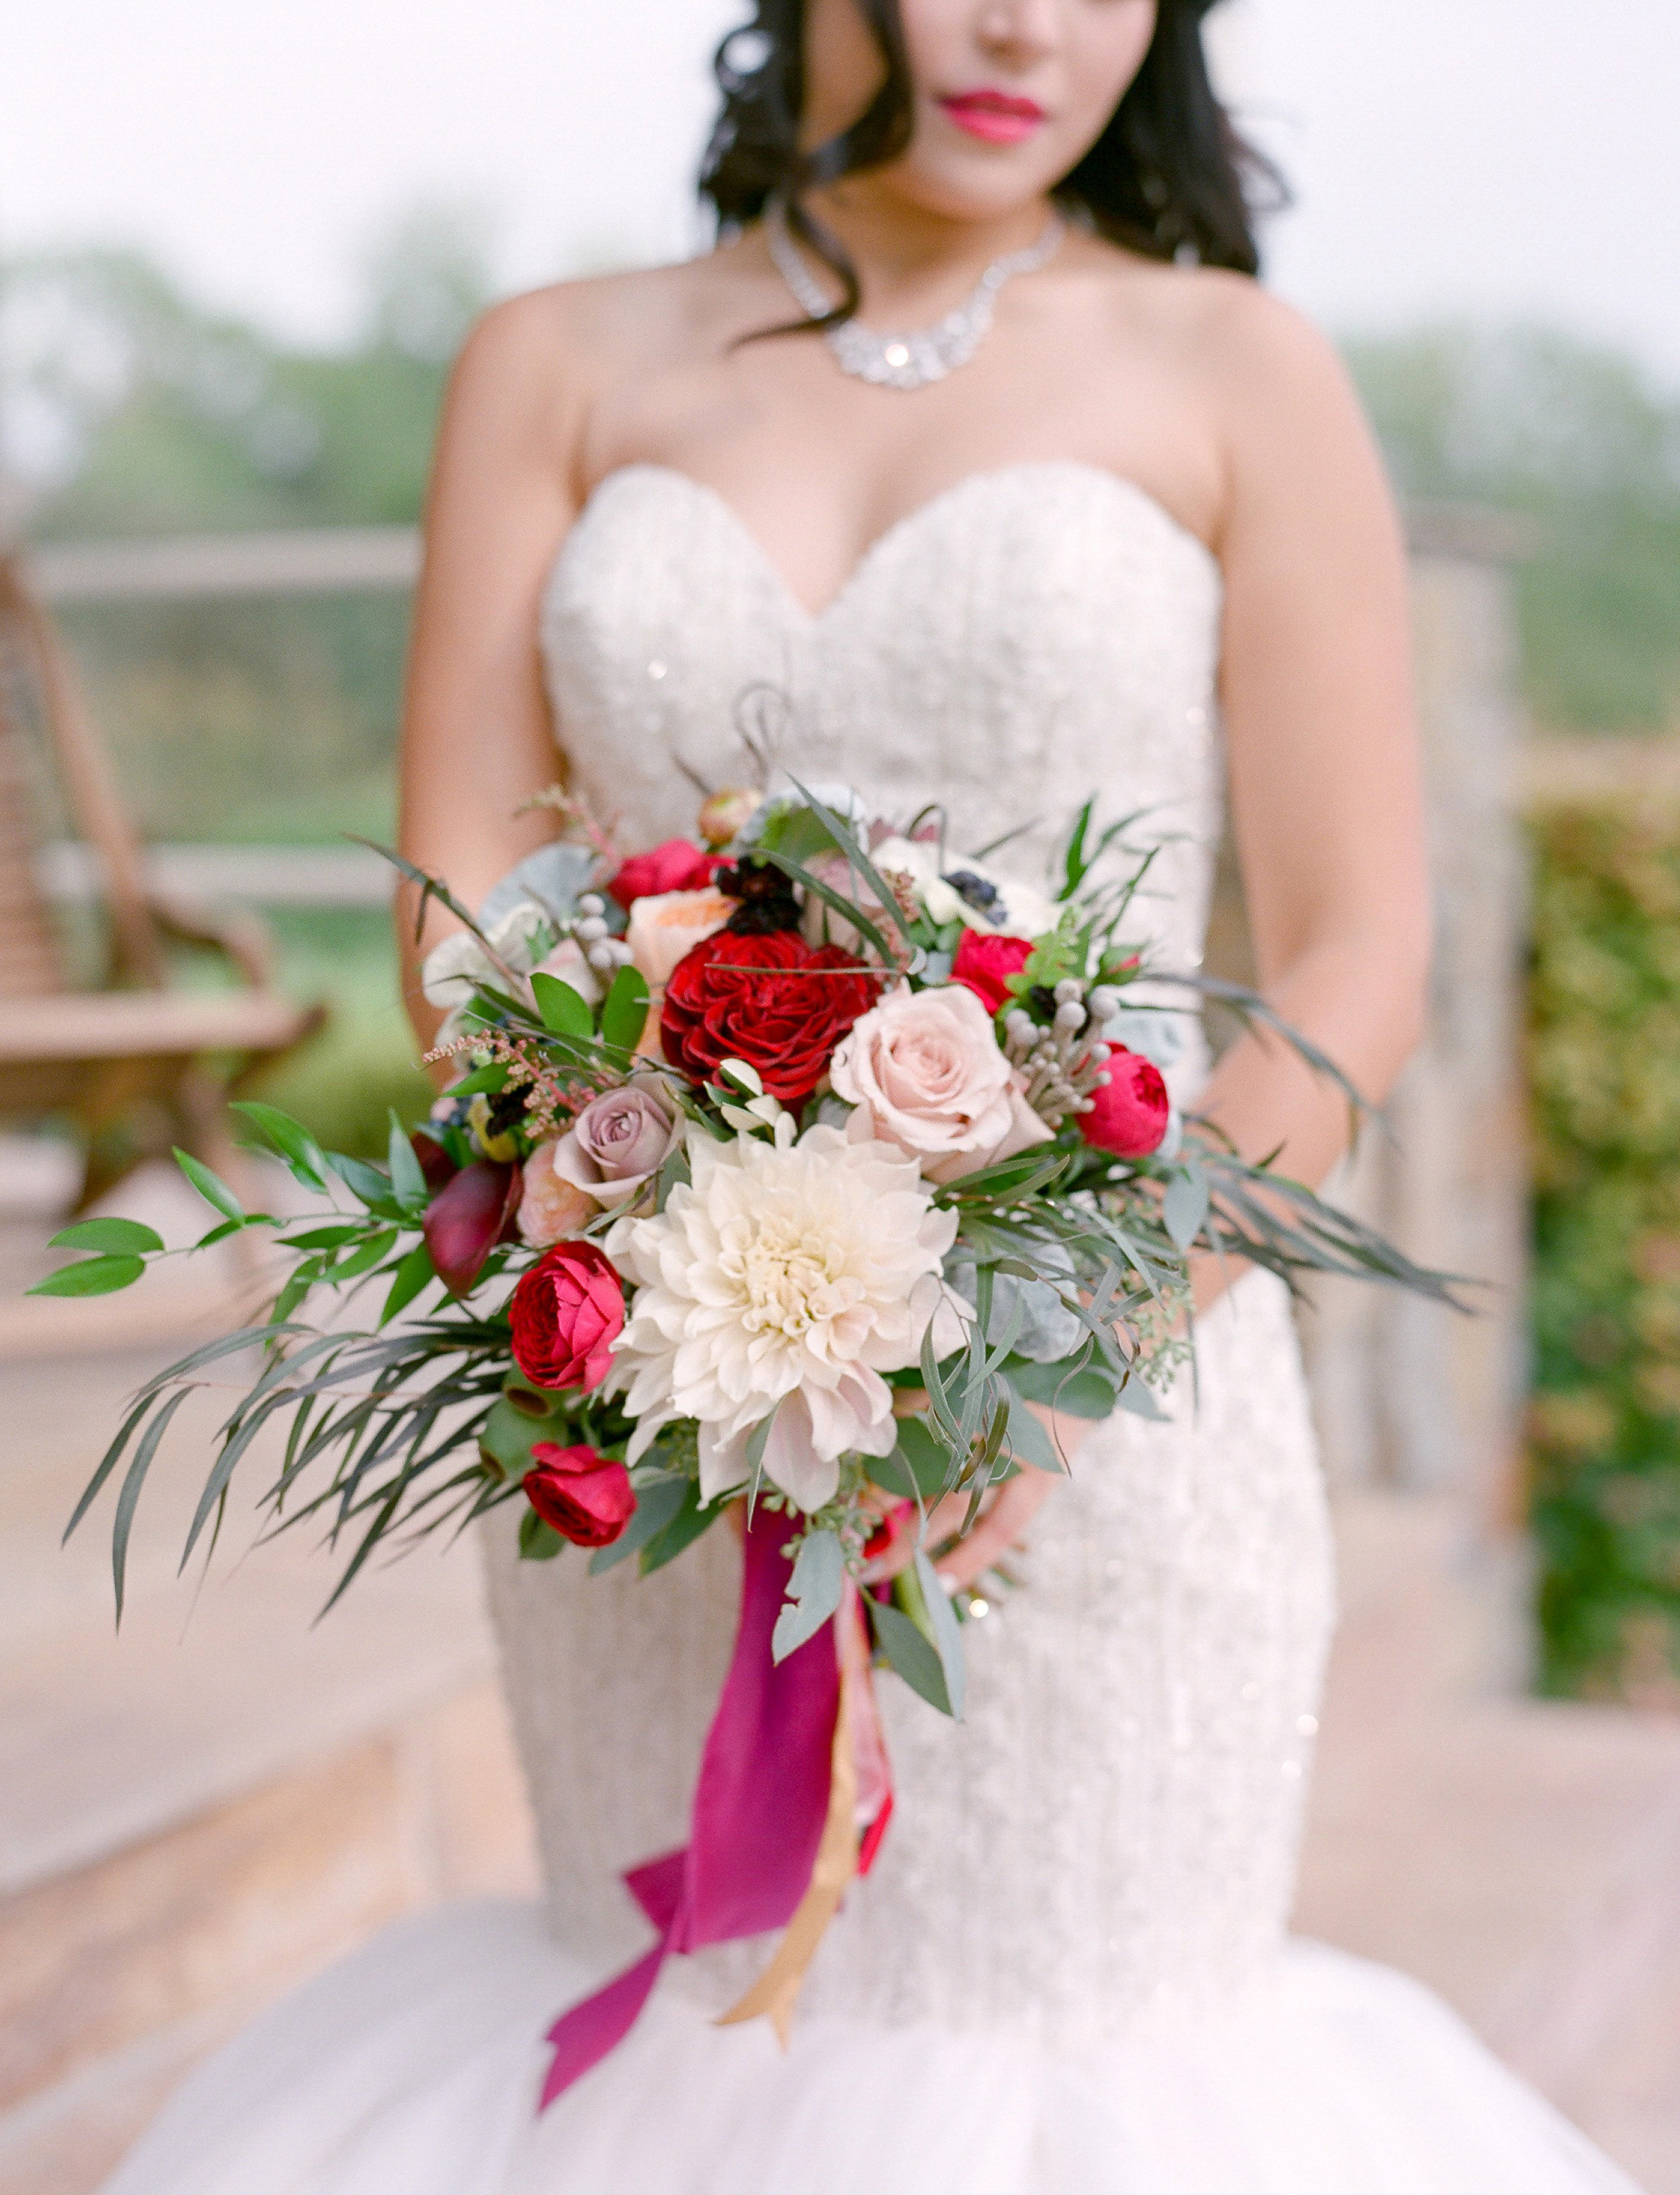 Bouquet_Bride_Romantic_Whimsical_Glamorous_Dahlia_Ranunculus_Roses_Eucalyptus_Burgundy_Pink_Ivory_Outdoor_summer_Evening_Northern_California.jpg